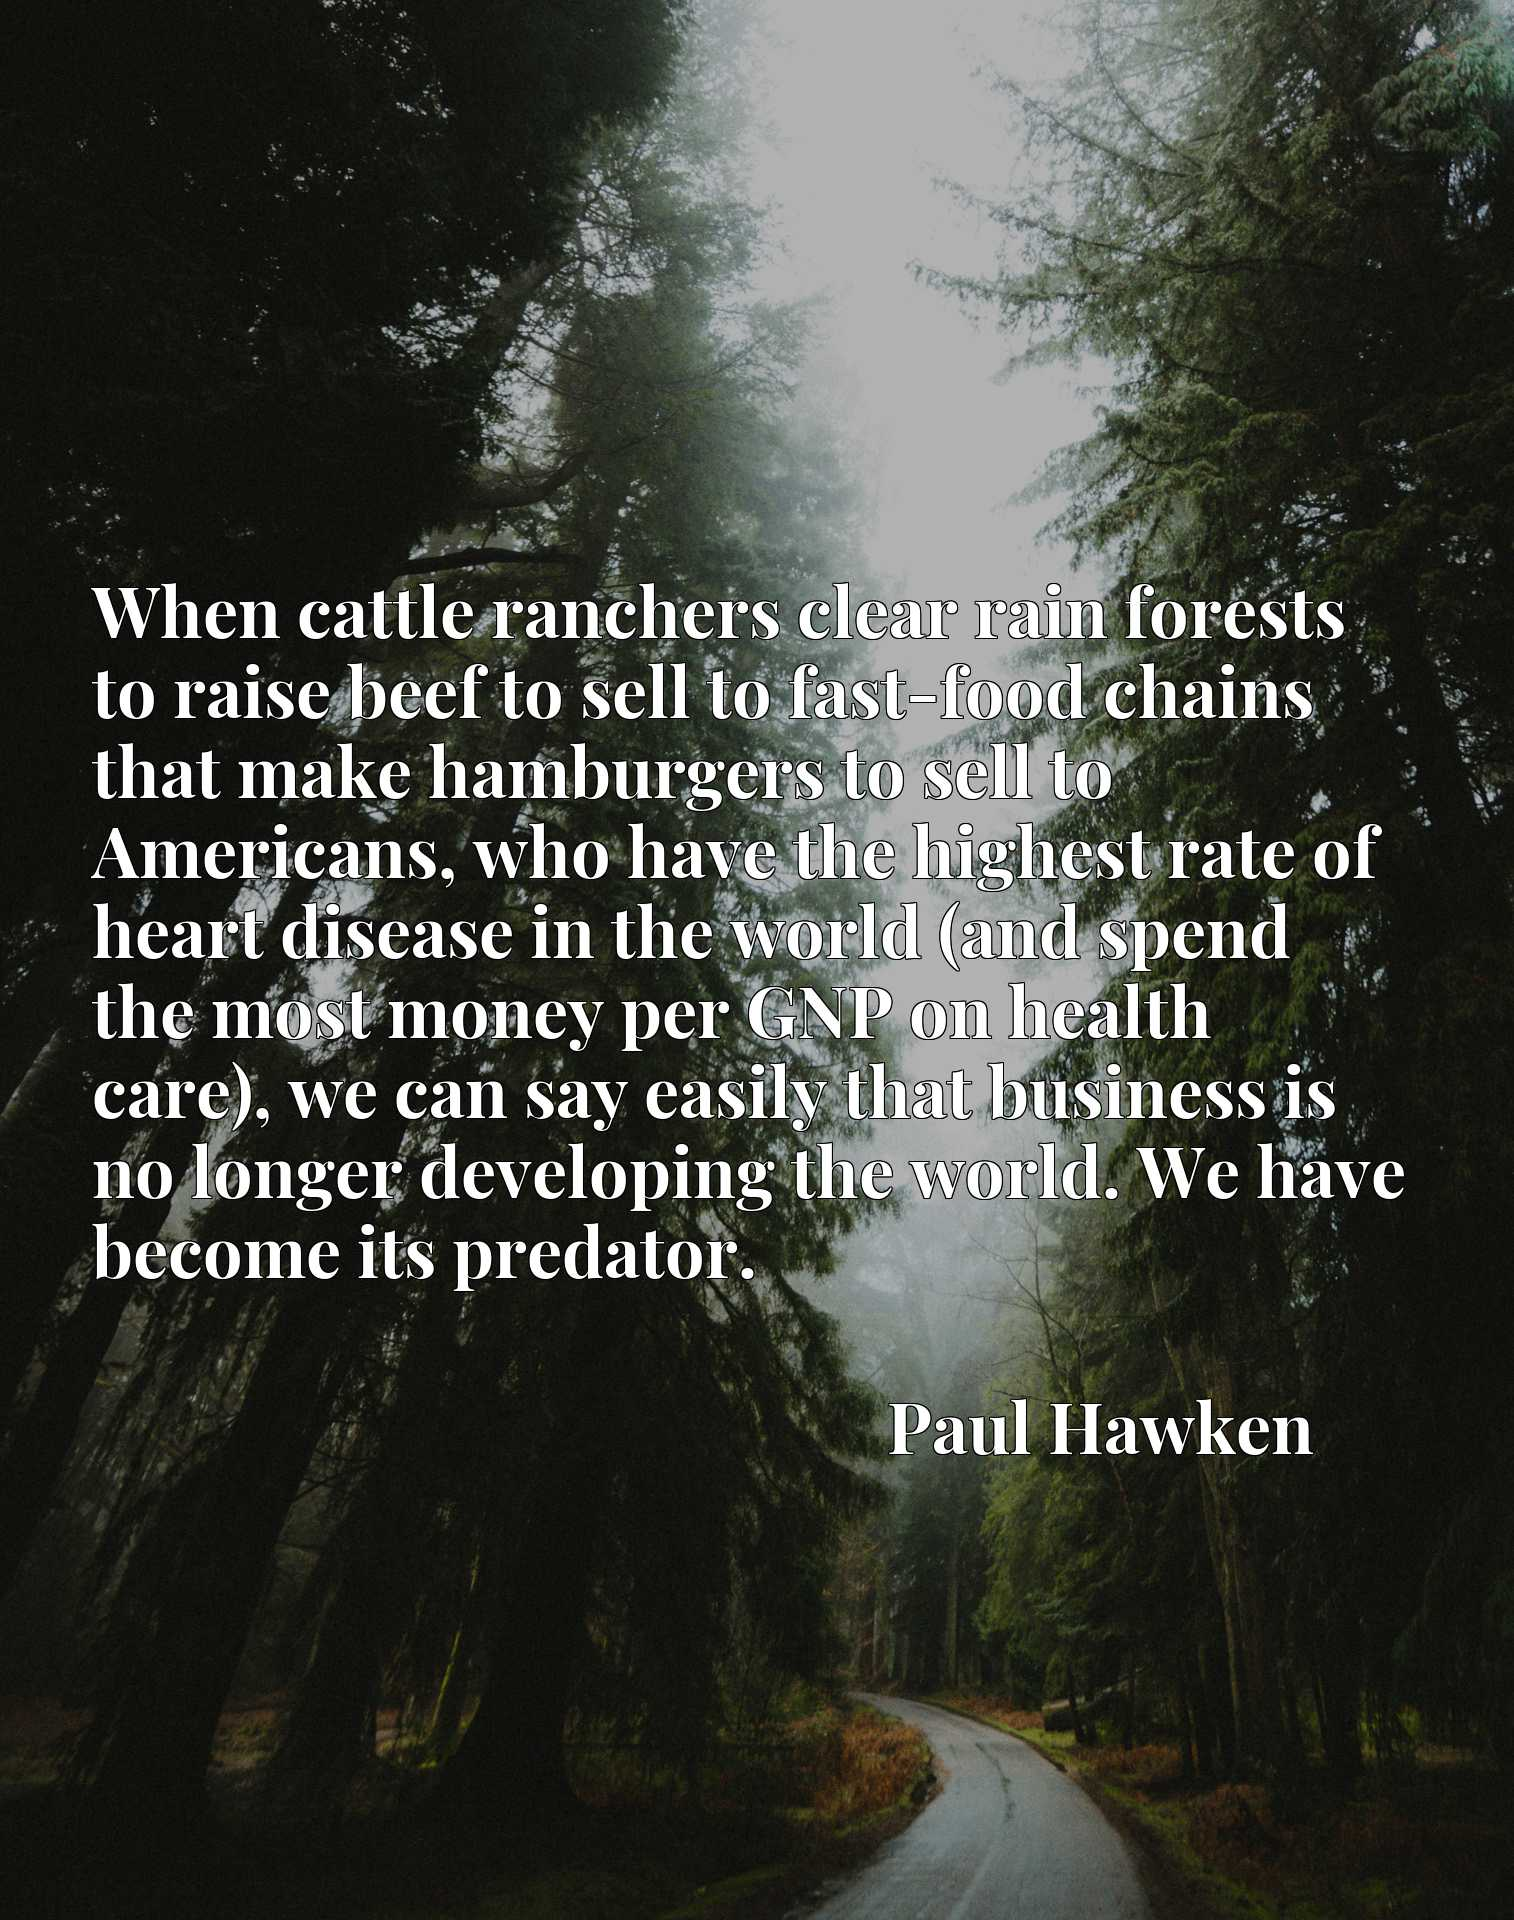 When cattle ranchers clear rain forests to raise beef to sell to fast-food chains that make hamburgers to sell to Americans, who have the highest rate of heart disease in the world (and spend the most money per GNP on health care), we can say easily that business is no longer developing the world. We have become its predator.